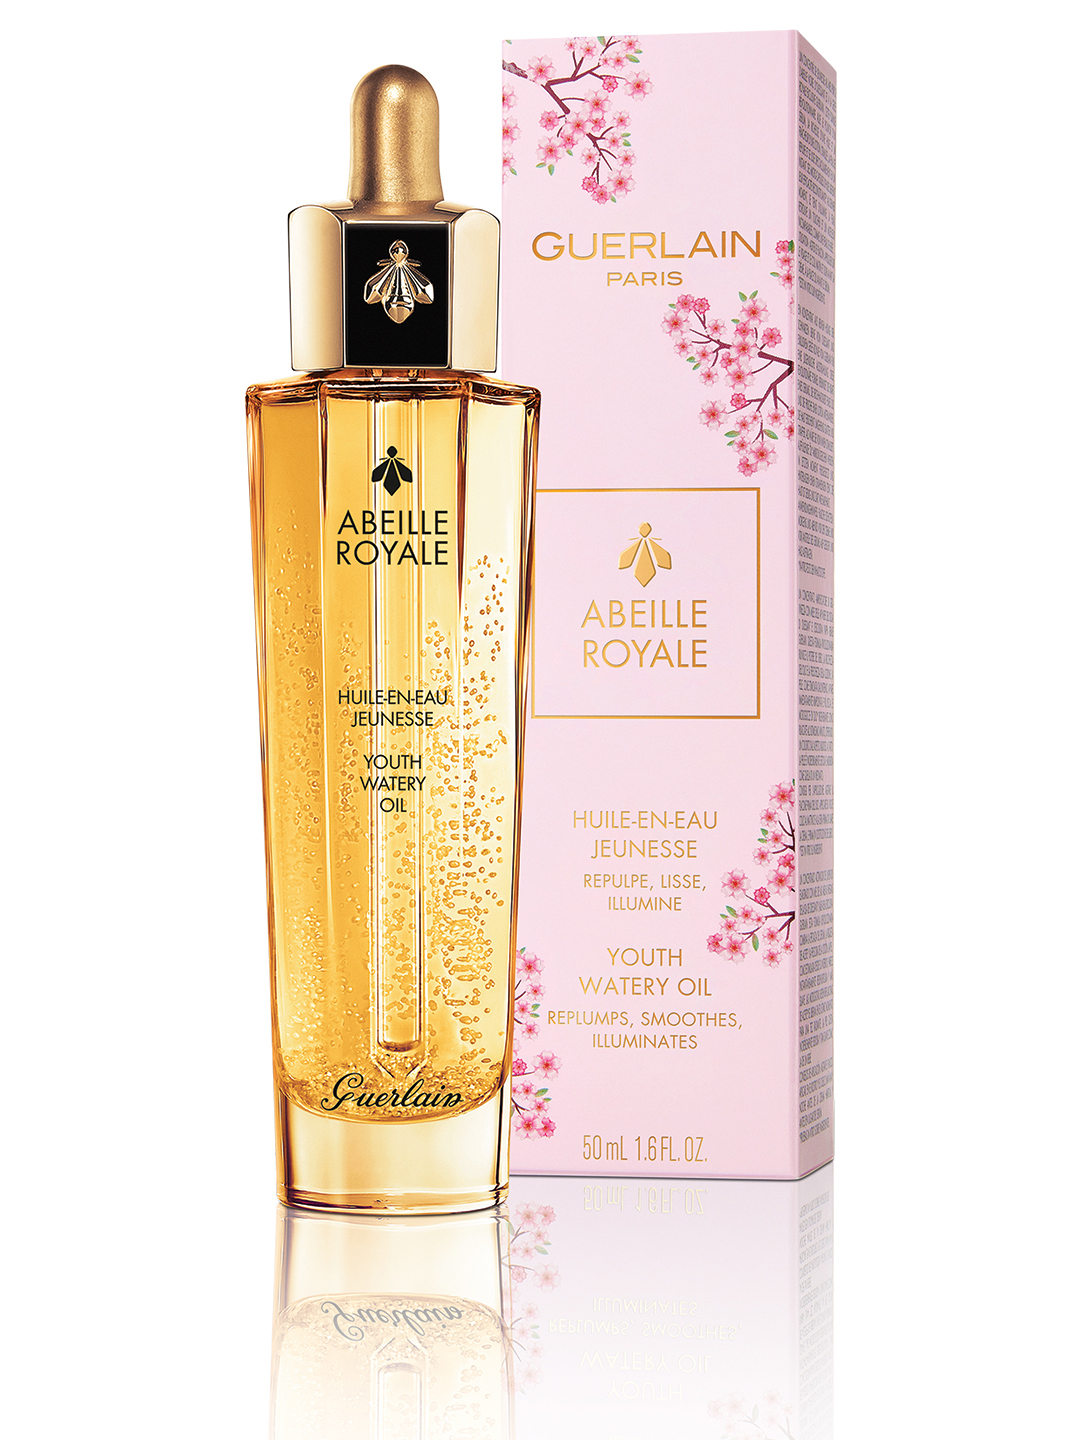 GUERLAIN Abeille Royale Youth Watery Oil - Cherry Blossom Edition Beauty